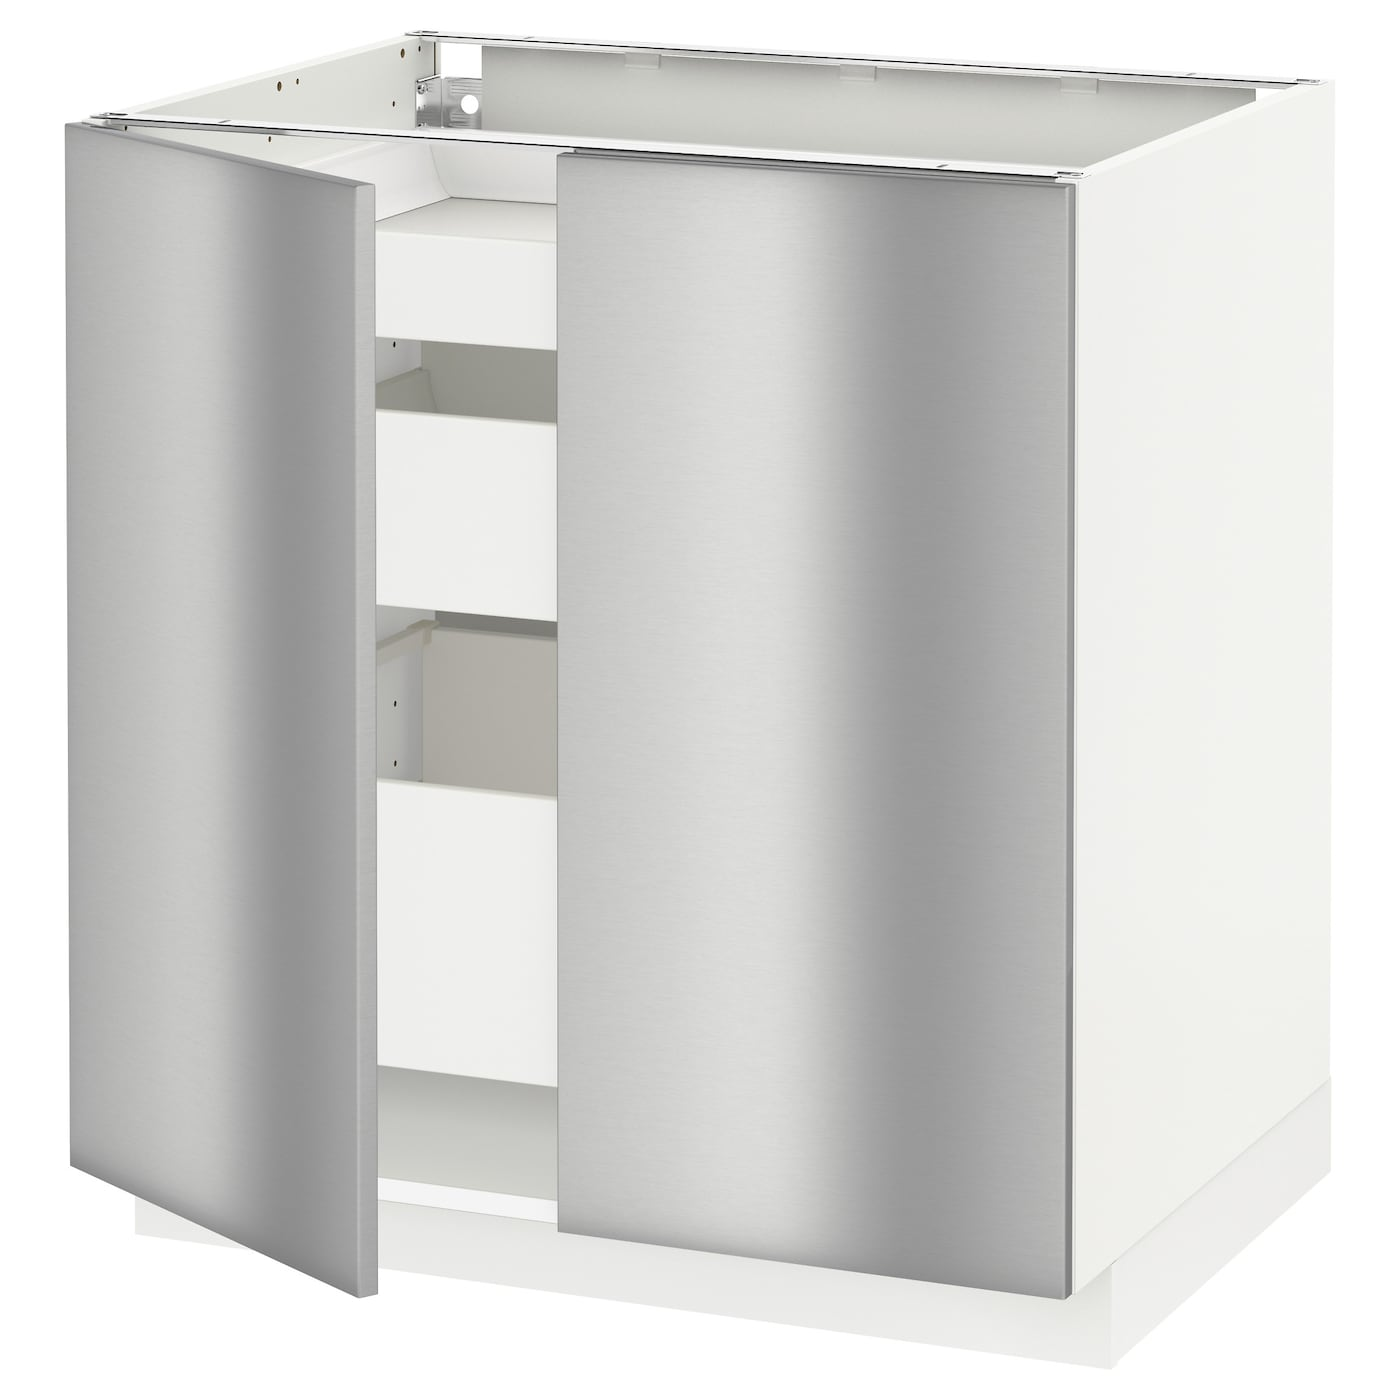 Stainless Steel Kitchen Base Cabinets: METOD/MAXIMERA Base Cabinet W 2 Doors/3 Drawers White